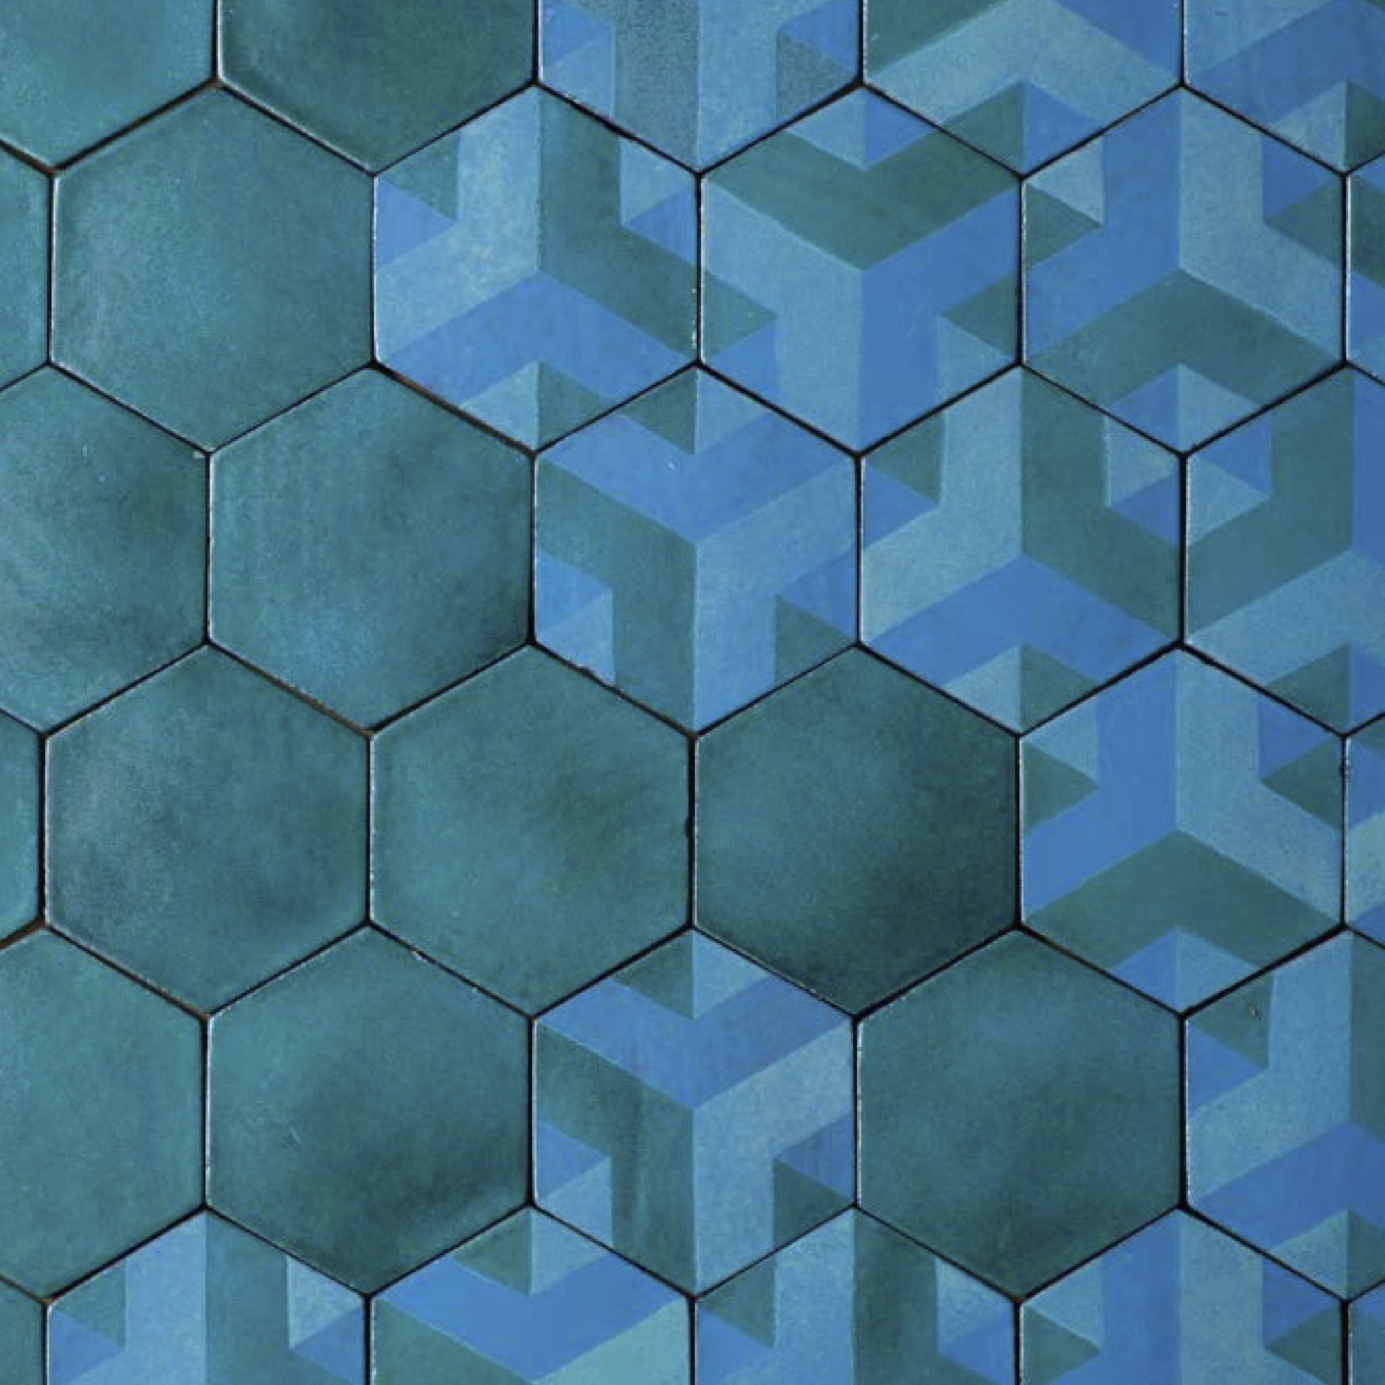 Hexagon Tiles Decoration on Turquoise -  | Matter of Stuff